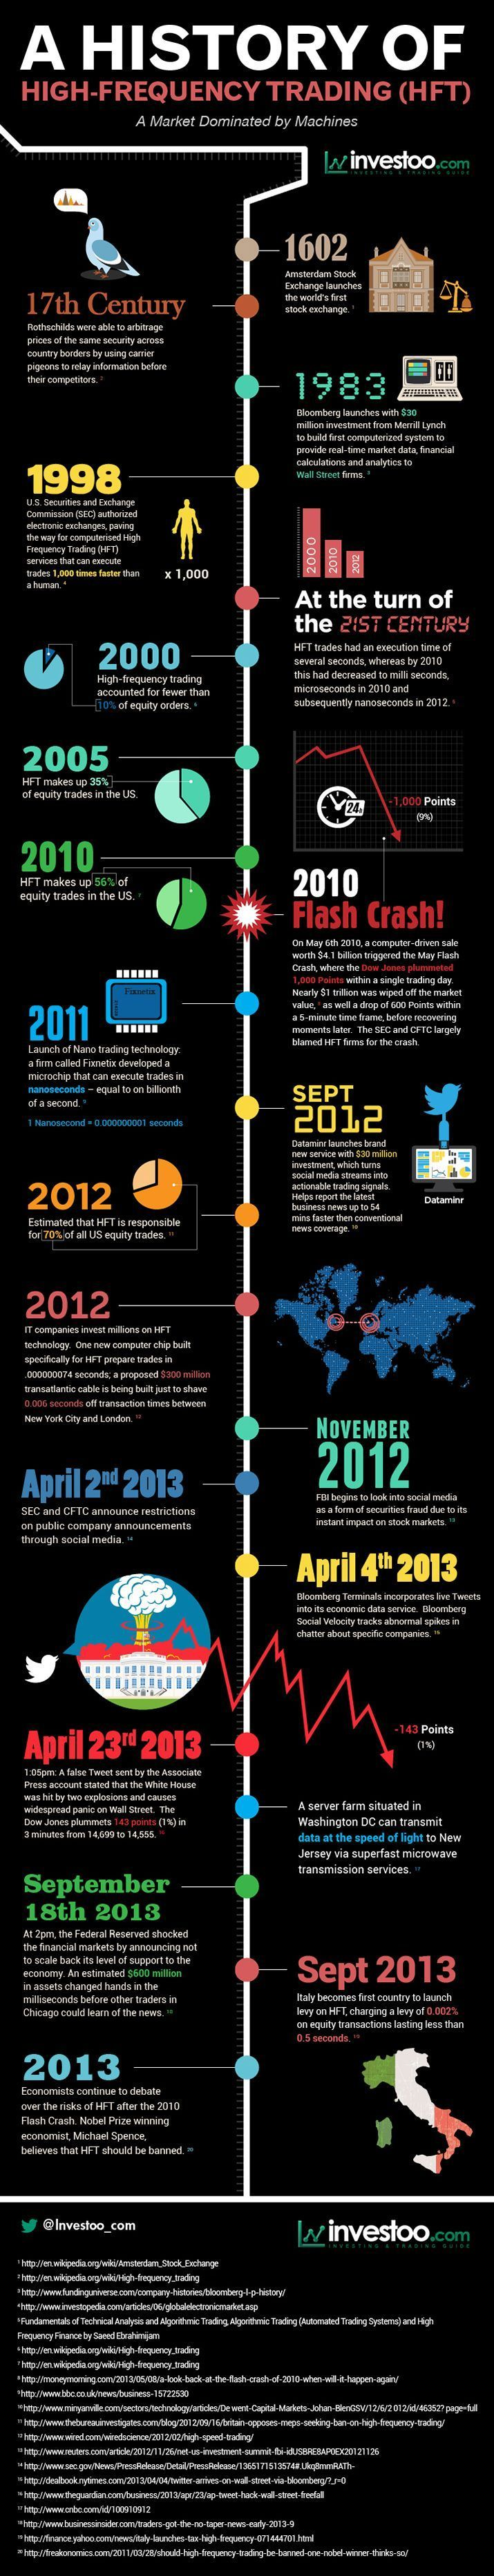 A History Of High Frequency Trading [INFOGRAPHIC] #history#trading More on trading on interessante-dinge.de